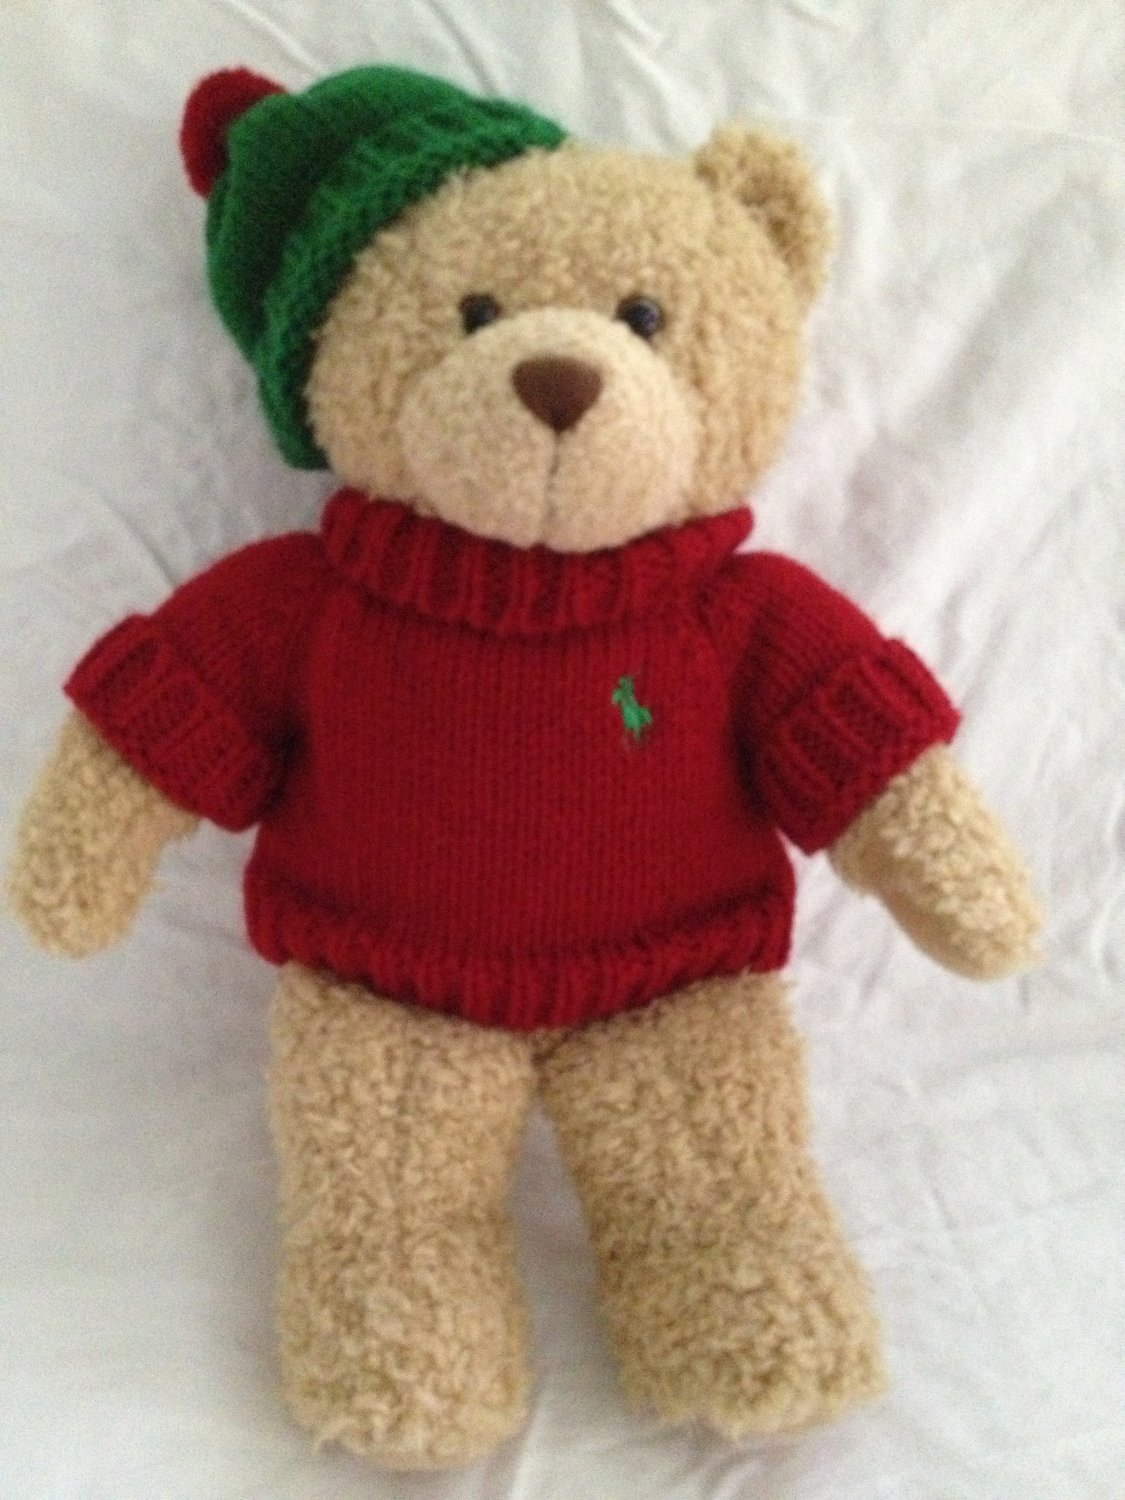 Ralph Lauren 2006 Christmas Teddy Bear That Cares Plush Toy in Red Sweater Hat